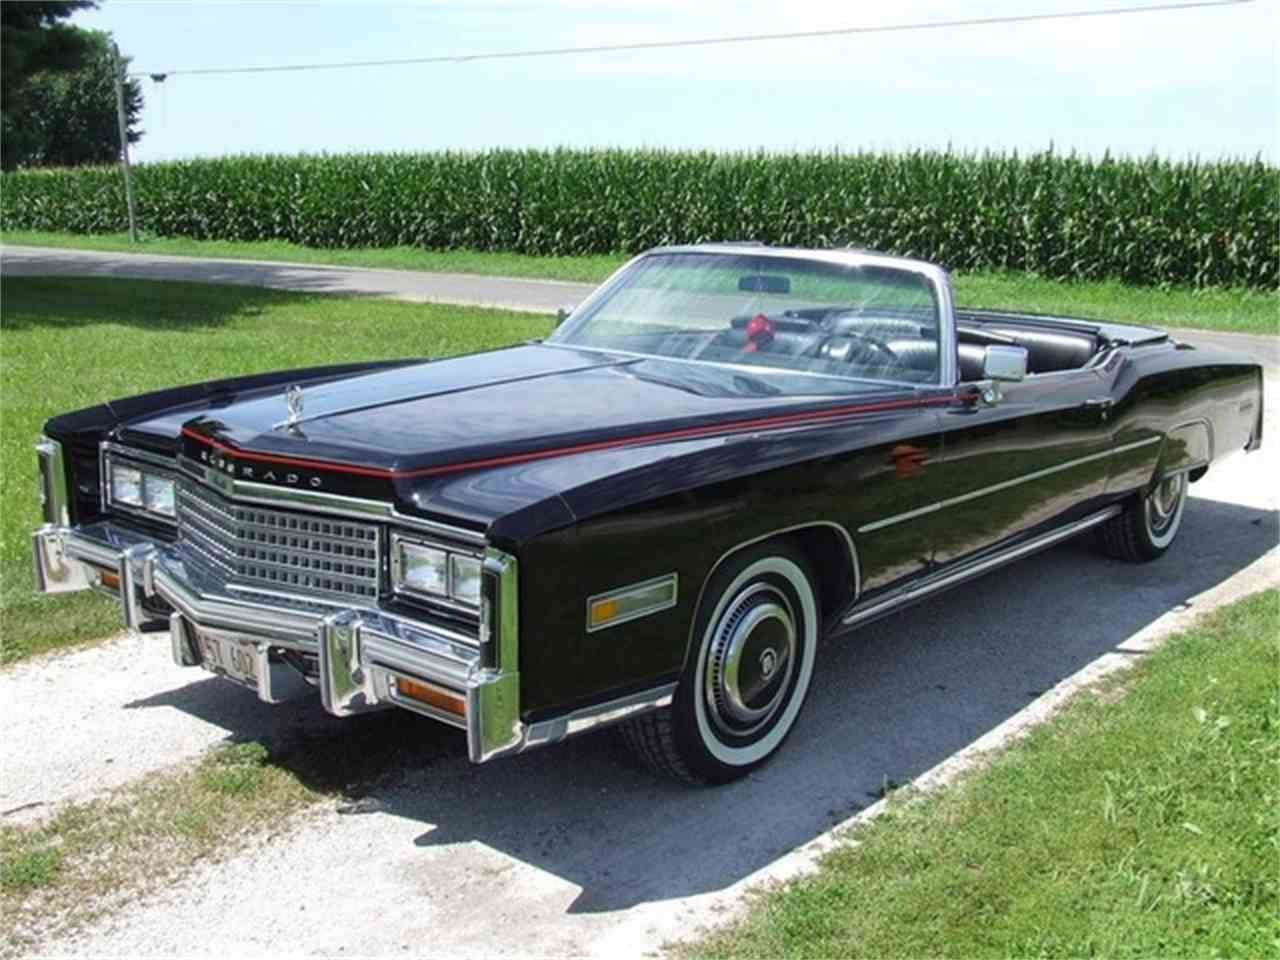 Large Picture of 1978 Cadillac Eldorado - $29,900.00 Offered by Classic Cars America LLC - C1JB